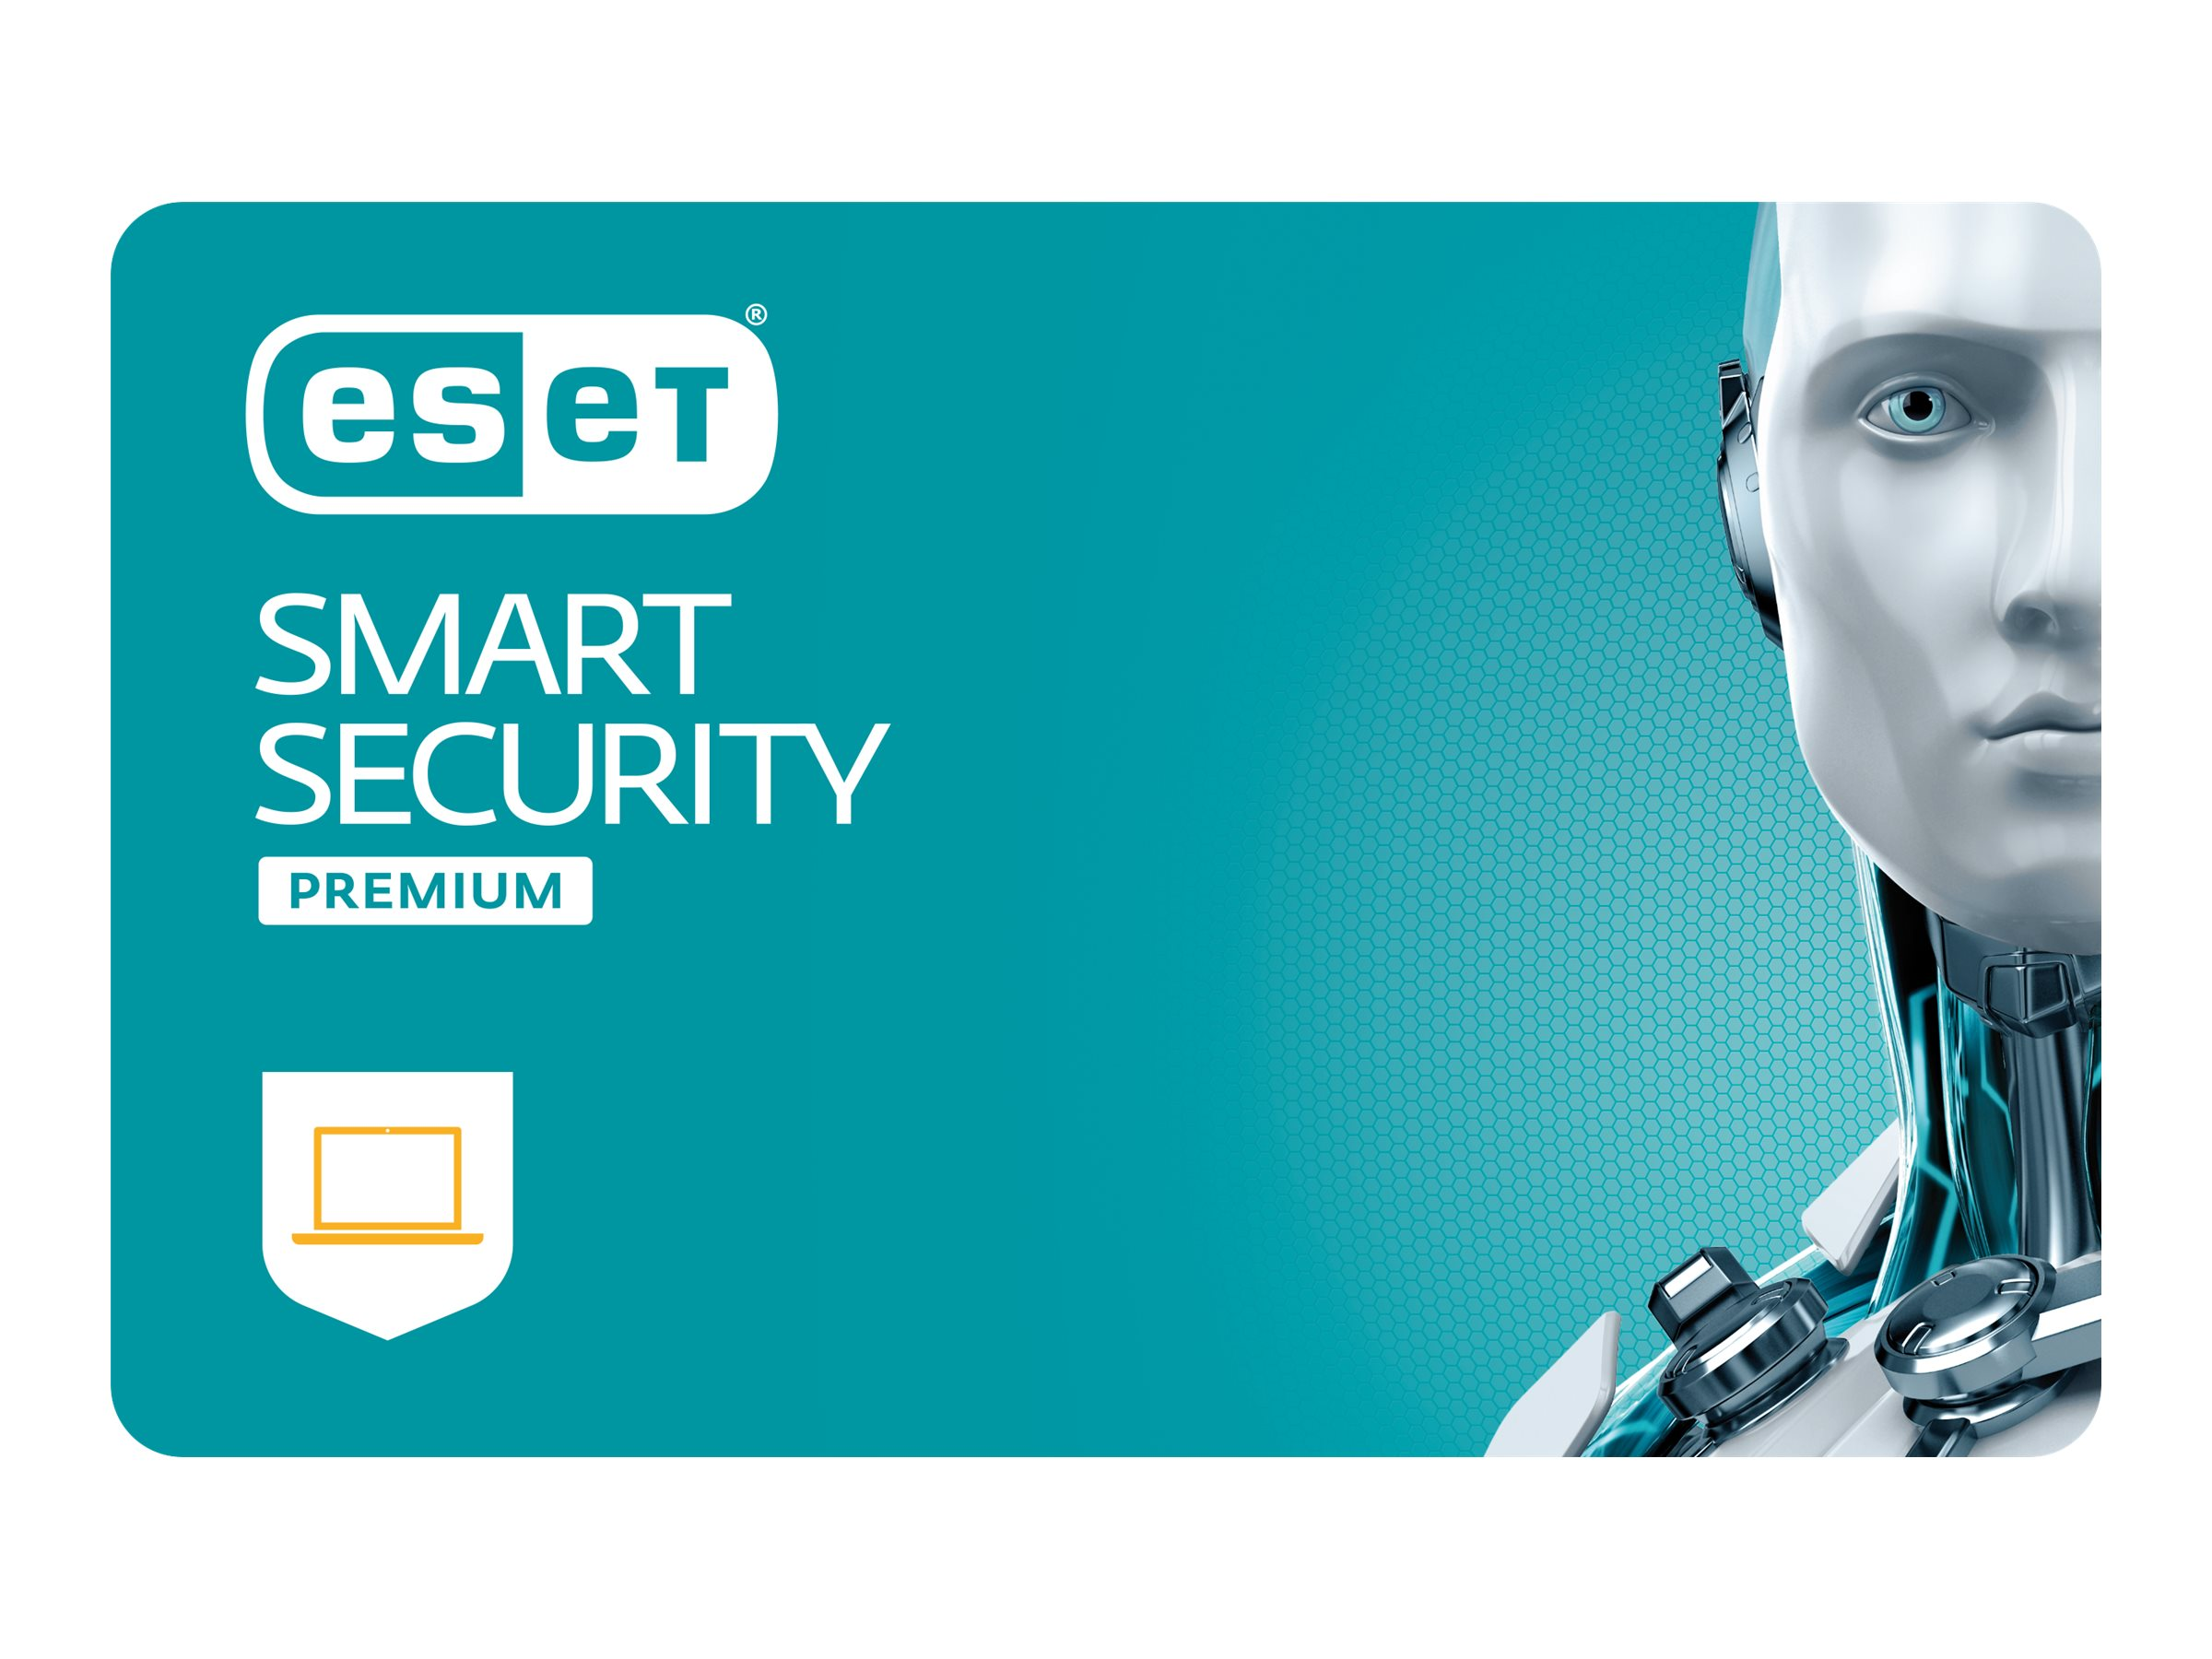 Vorschau: ESET Smart Security Premium - Abonnement-Lizenz